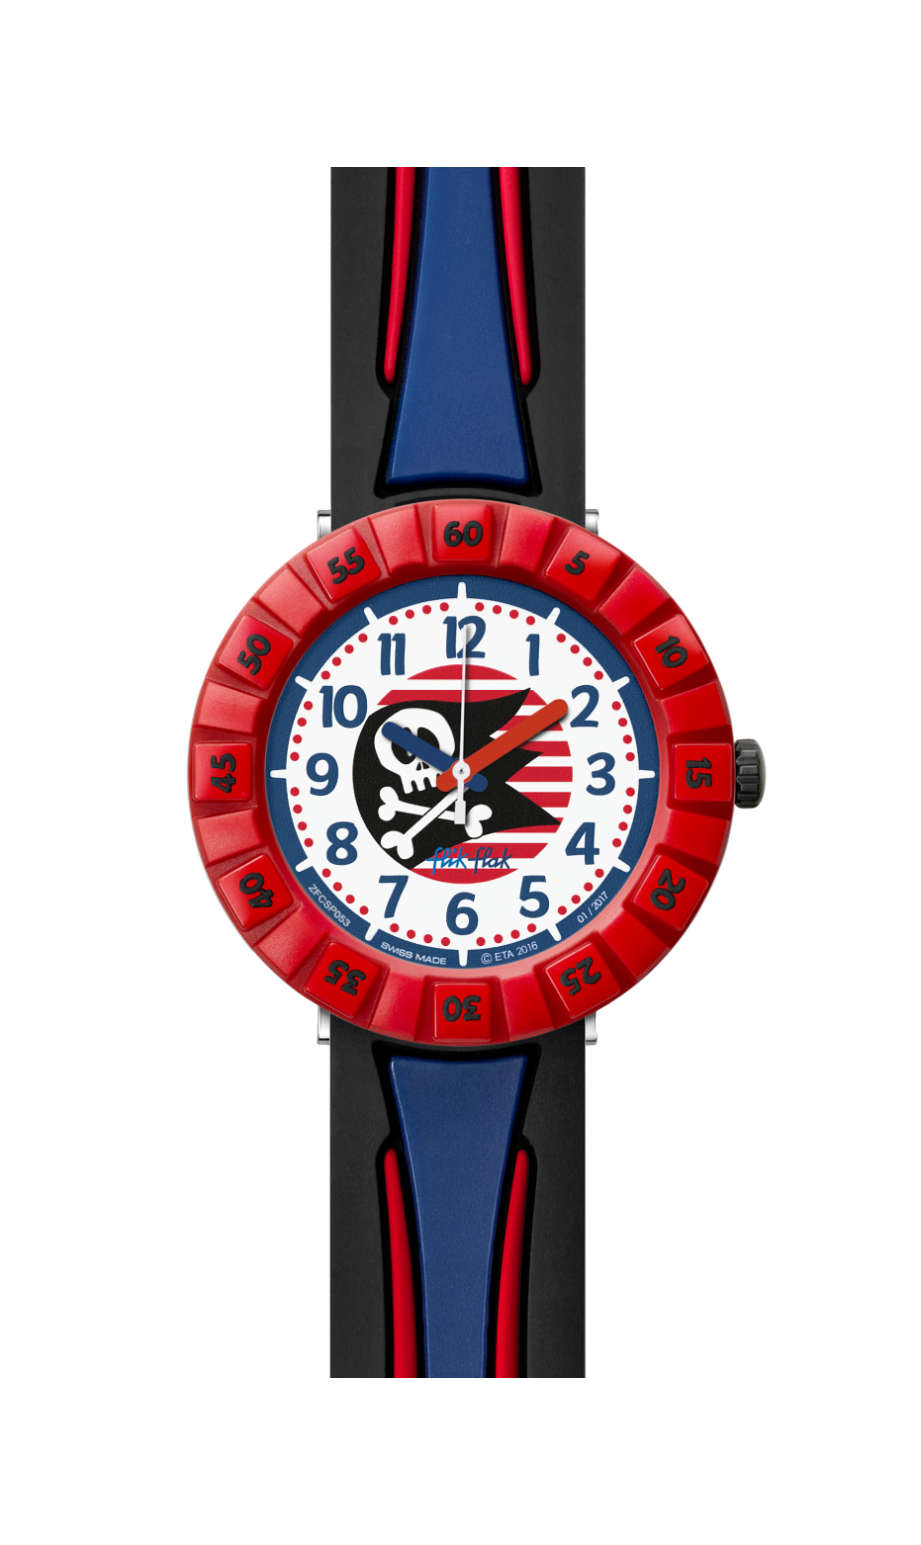 Swatch - STRONG SAILOR - 1